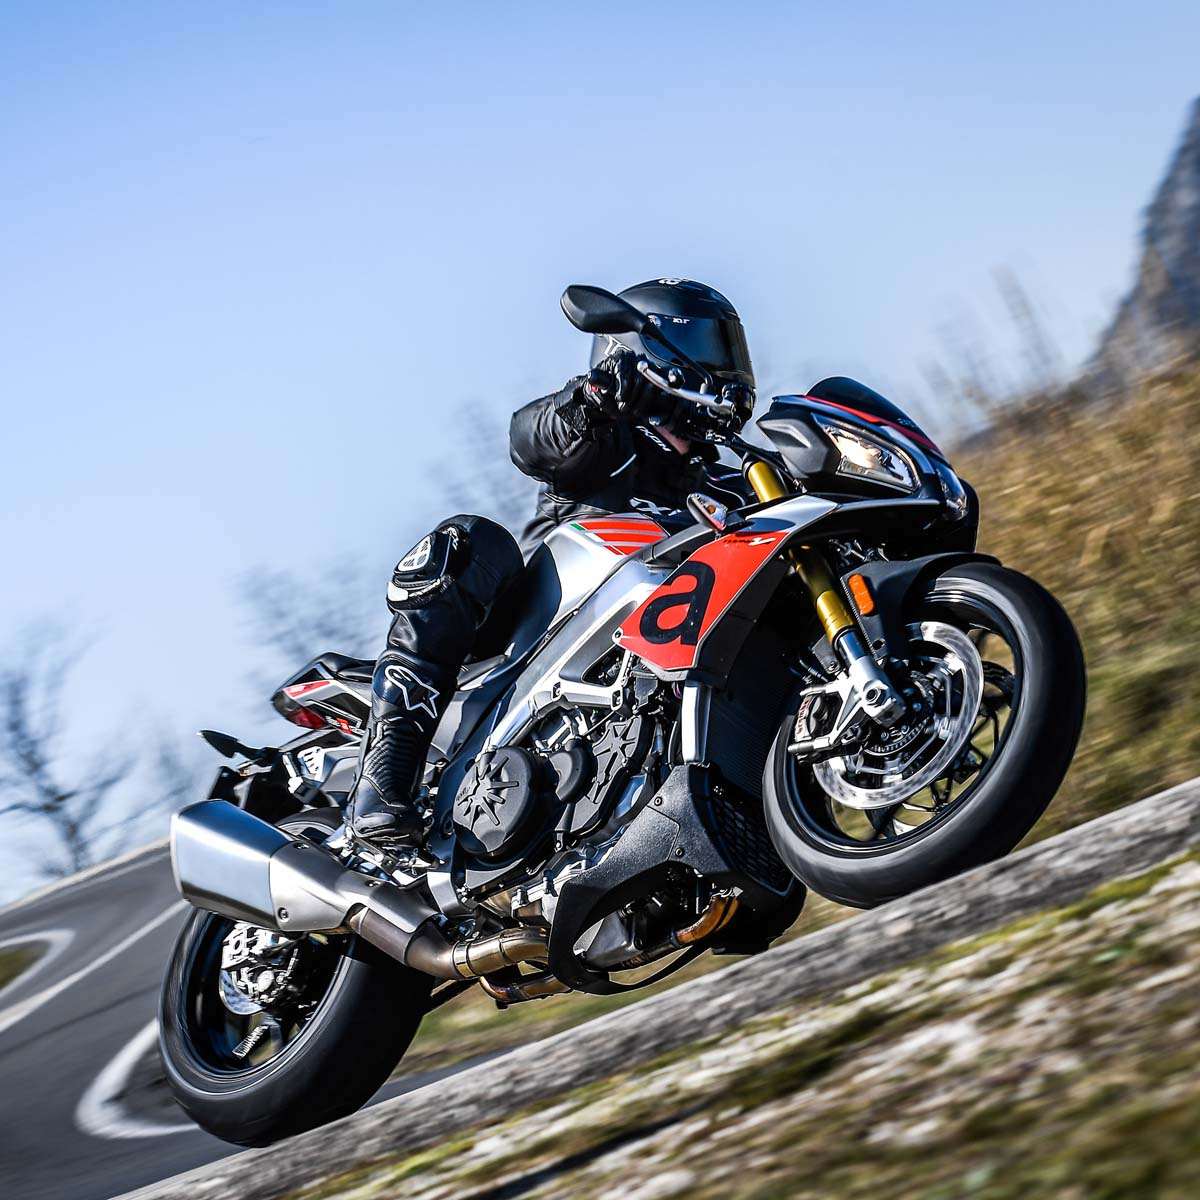 Aprilia Tuono V4 1100 | Naked Fun is What It's All About_thumb